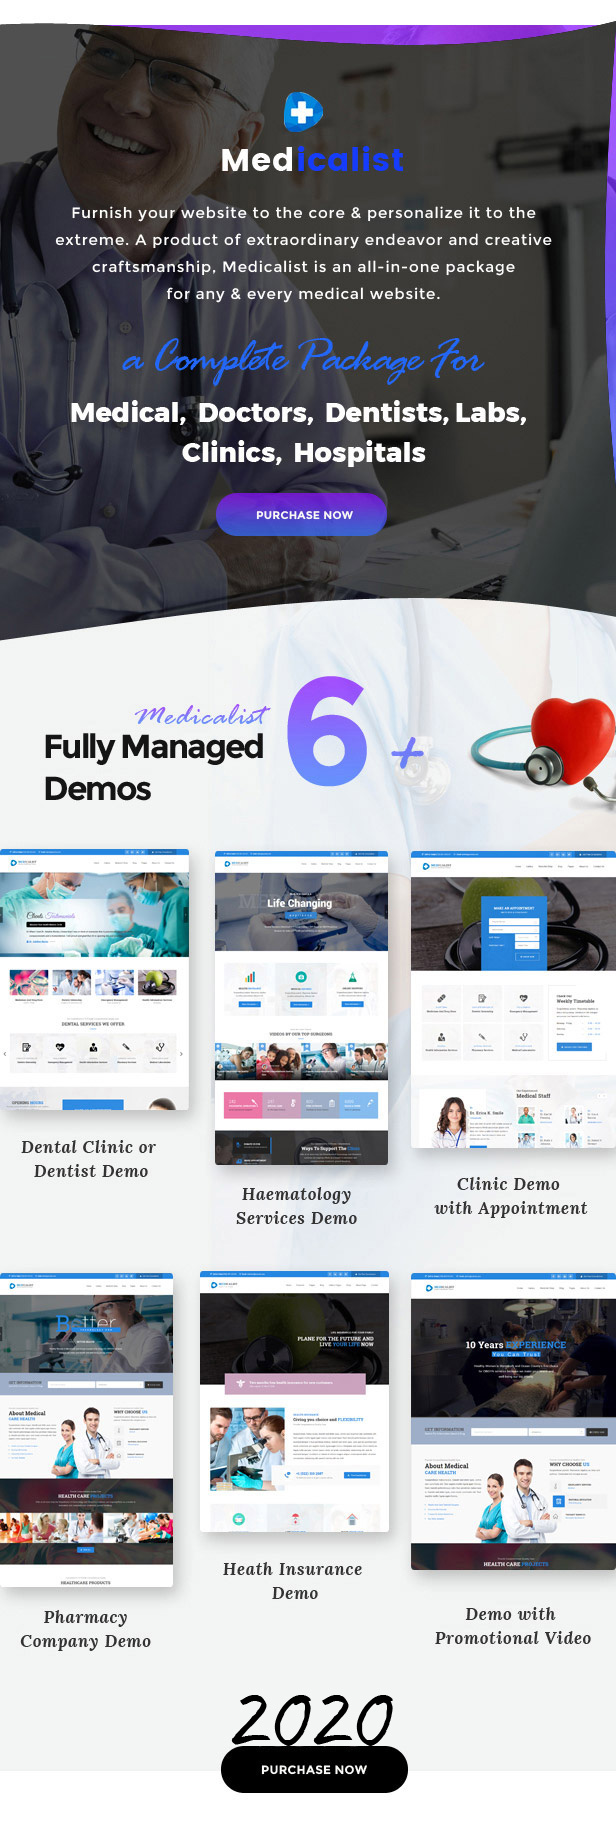 Medicalist - An All-in-One WP Medical Theme with Appointment and Blood Donation System - 2